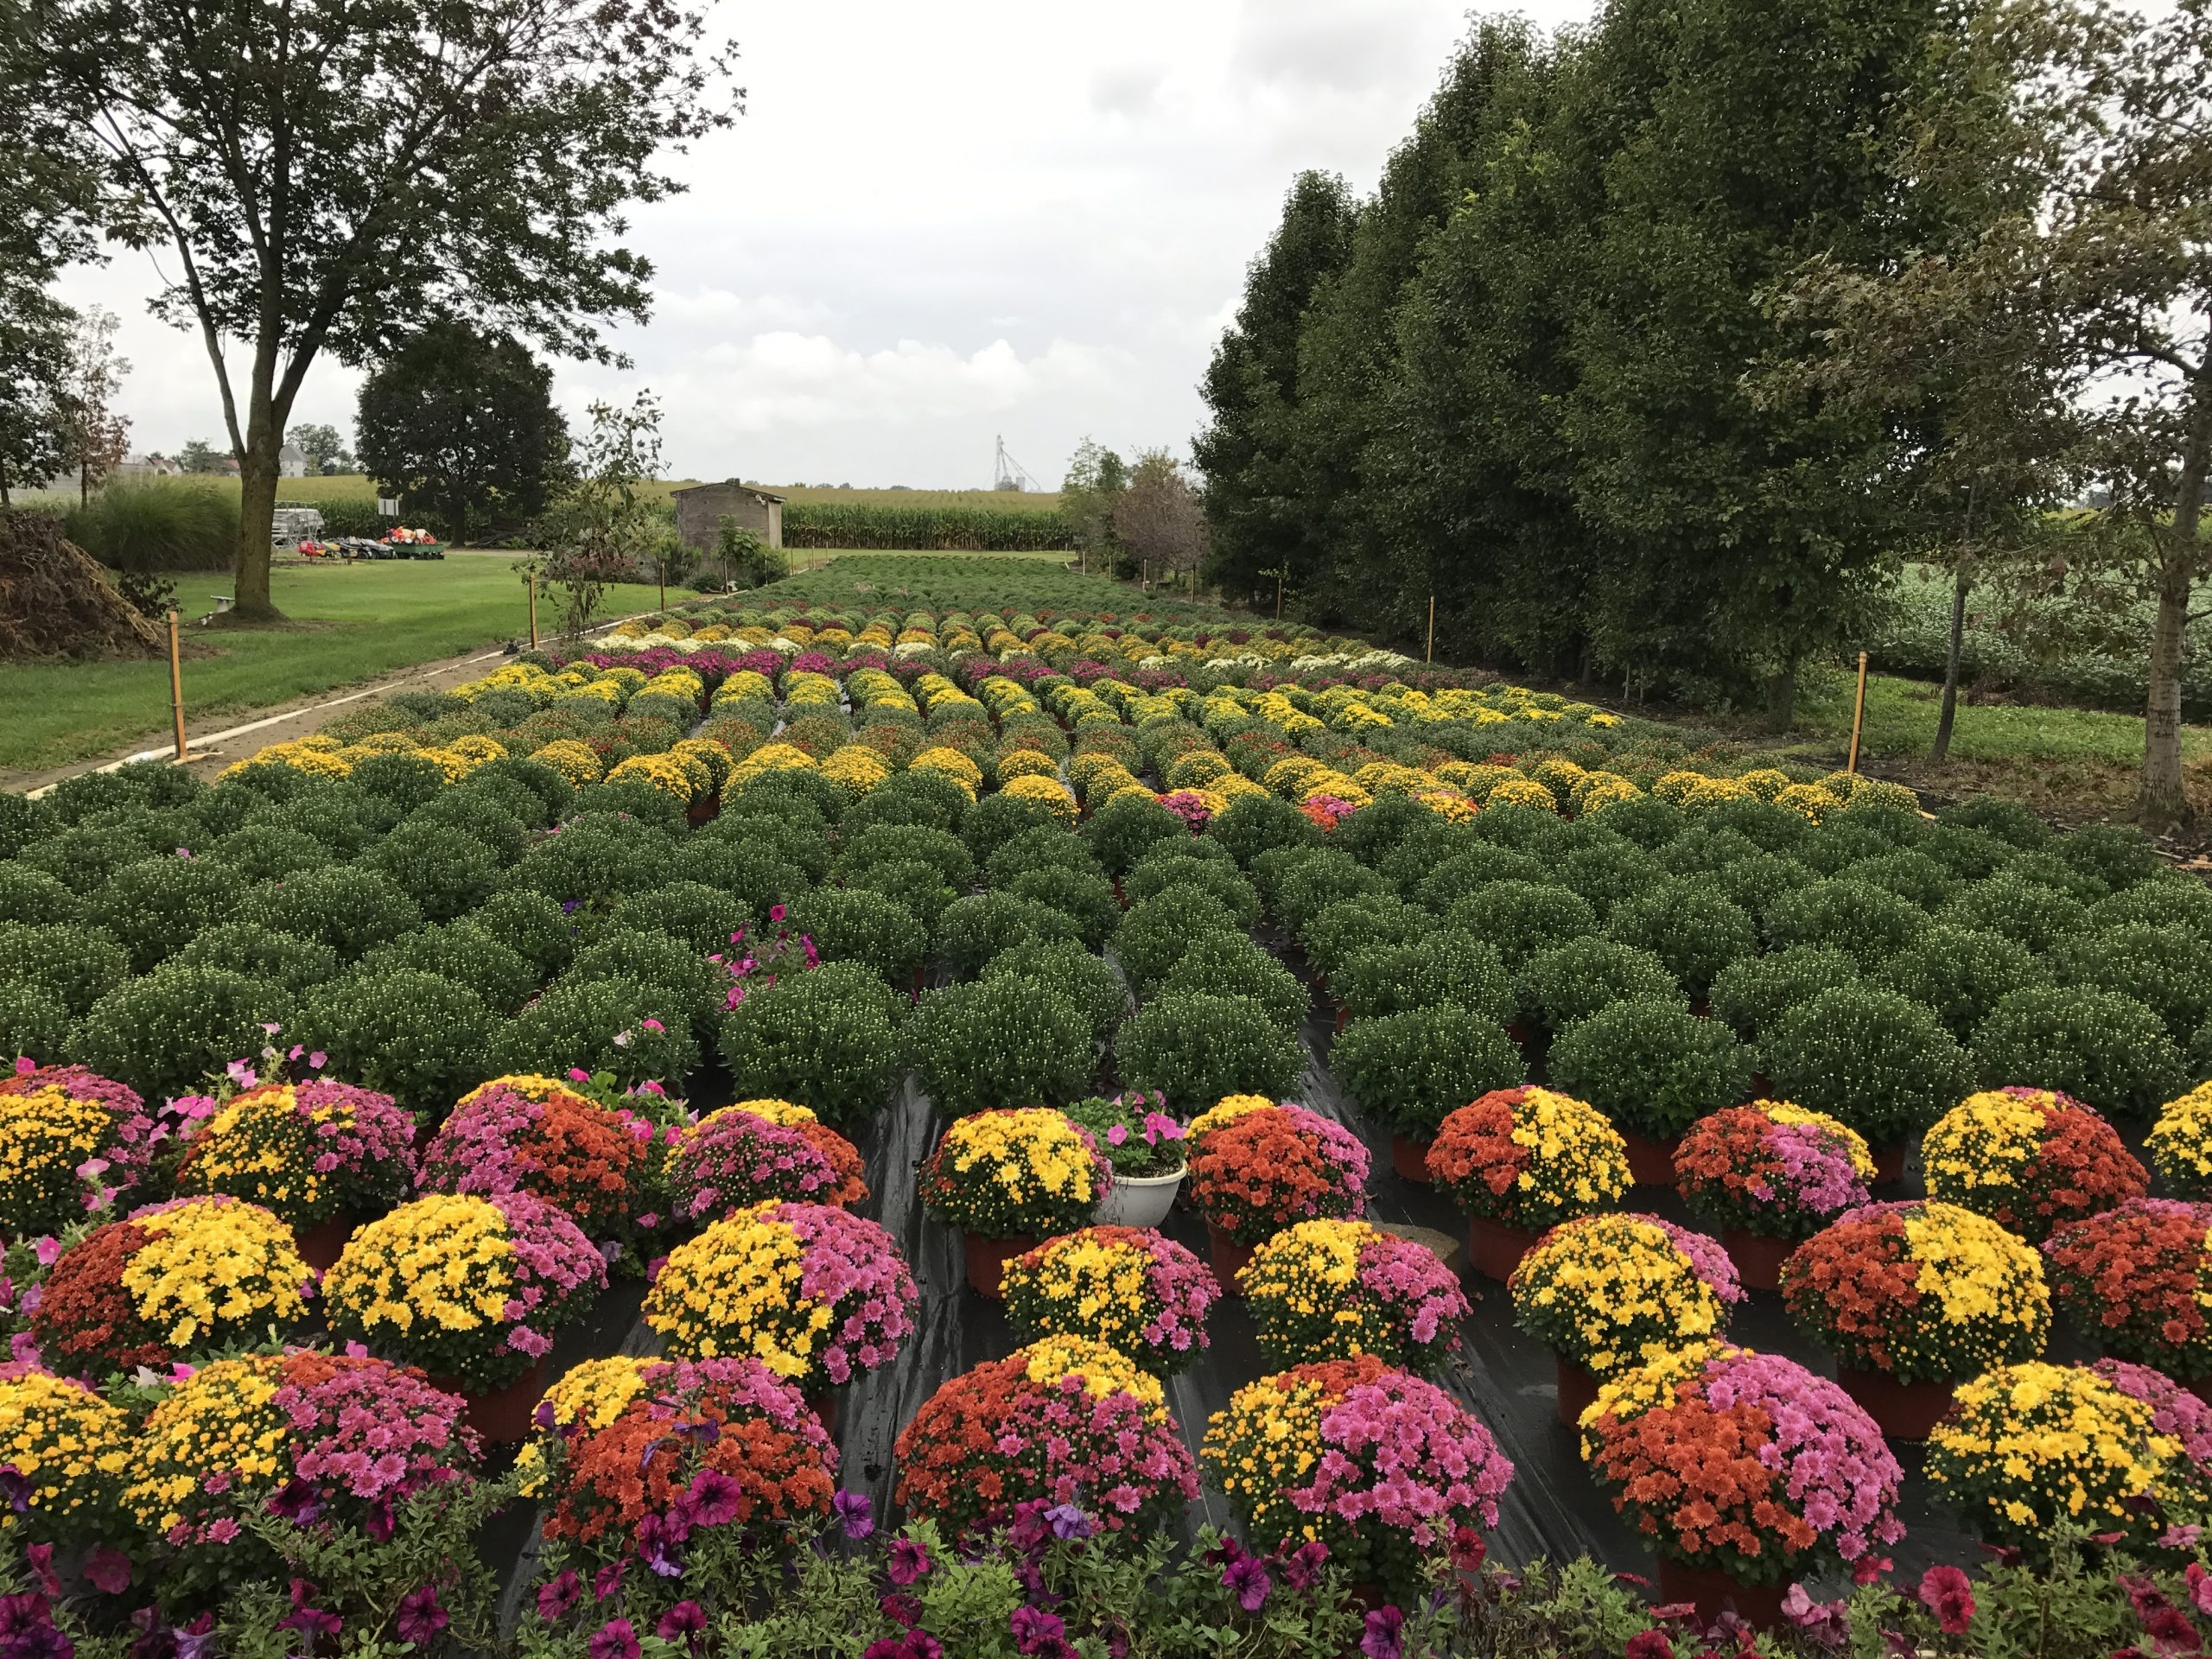 Mums Majestic Nursery and Gardens